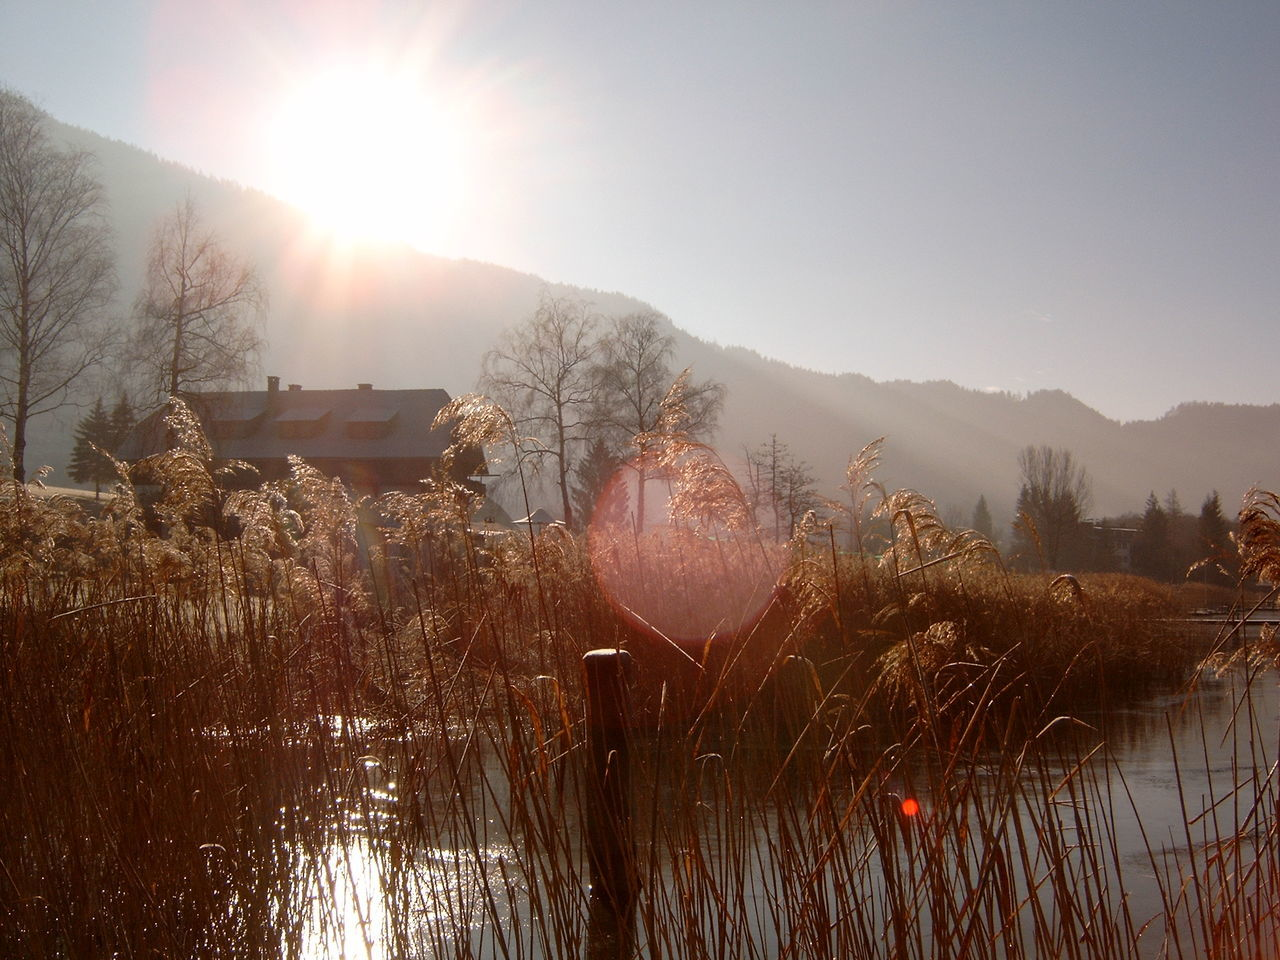 Austria Cold Temperature House Kärnten Lake View Lakeside Lakesideview Landscape Lens Flare Light Ossiacher See Outdoors Scenics Sun Sunbeam Sunset Tranquil Scene Tranquility Winter